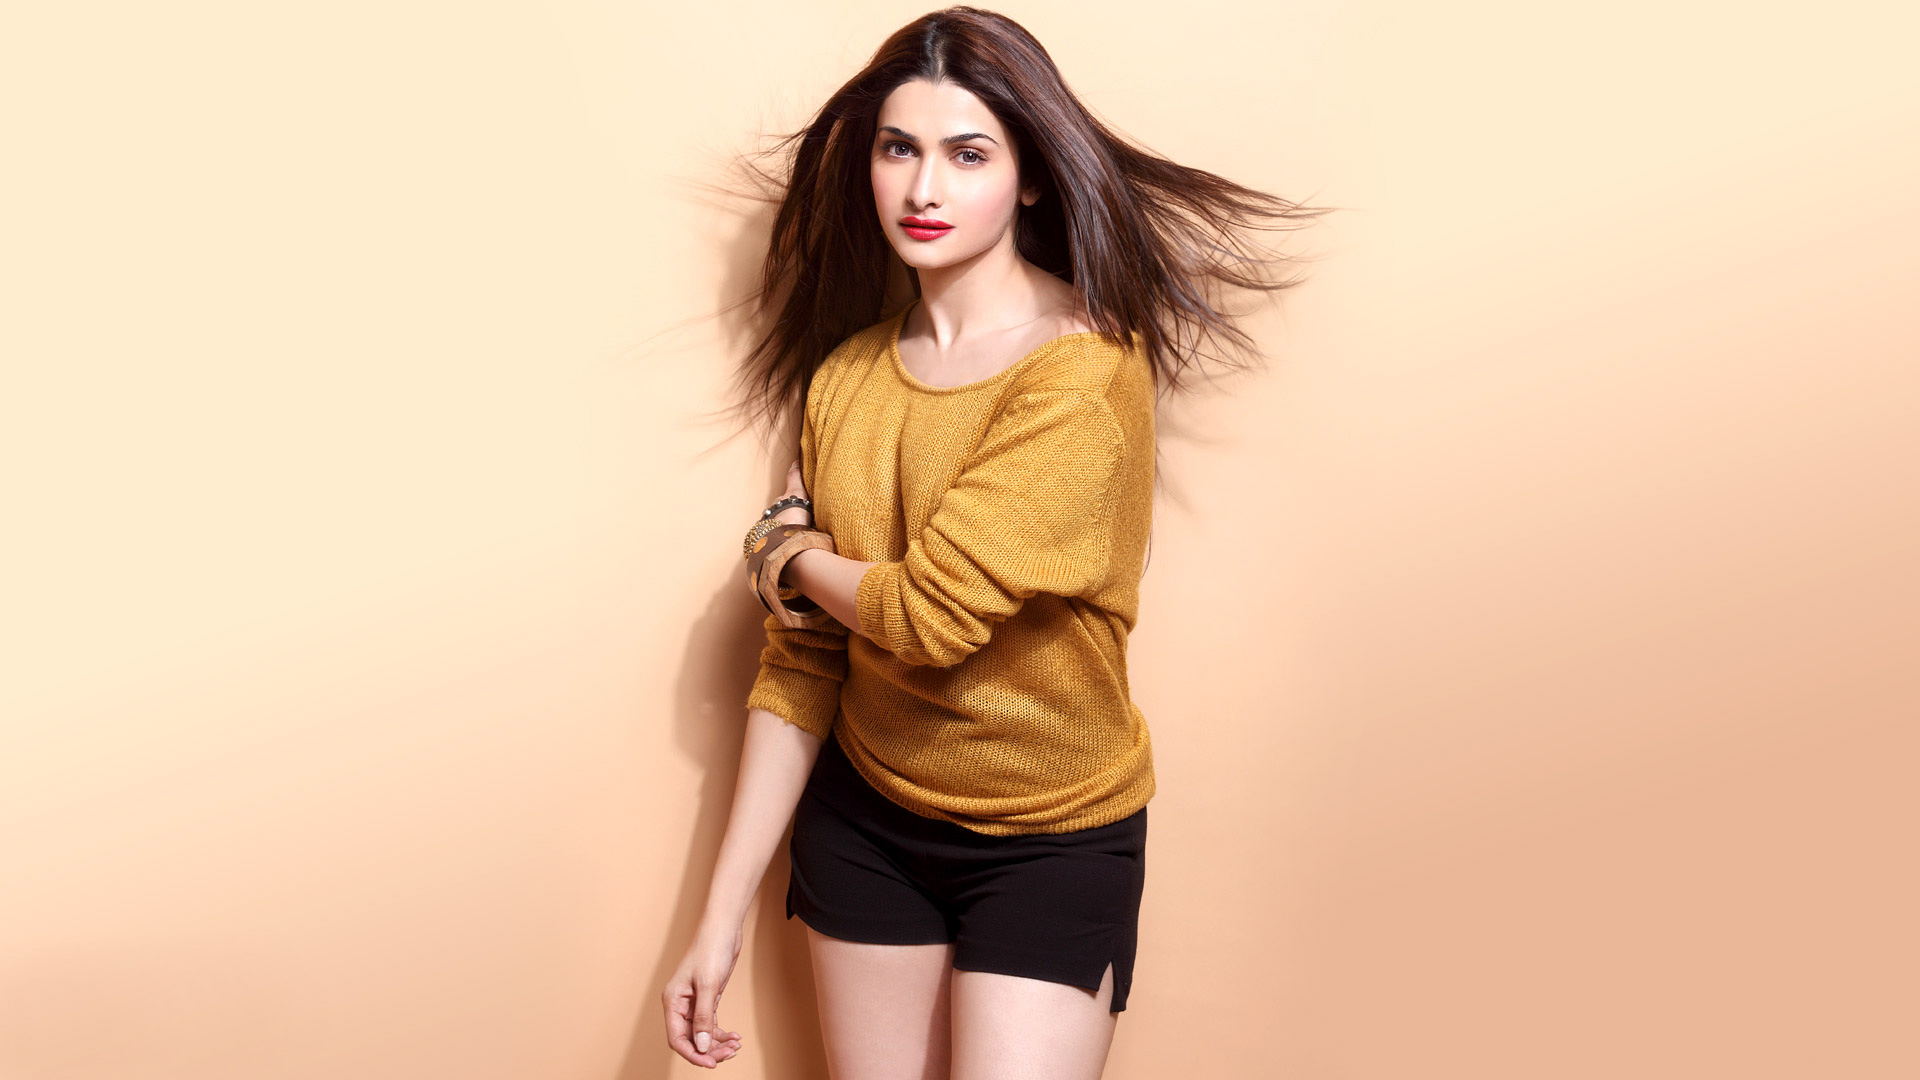 prachi desai wallpaper background